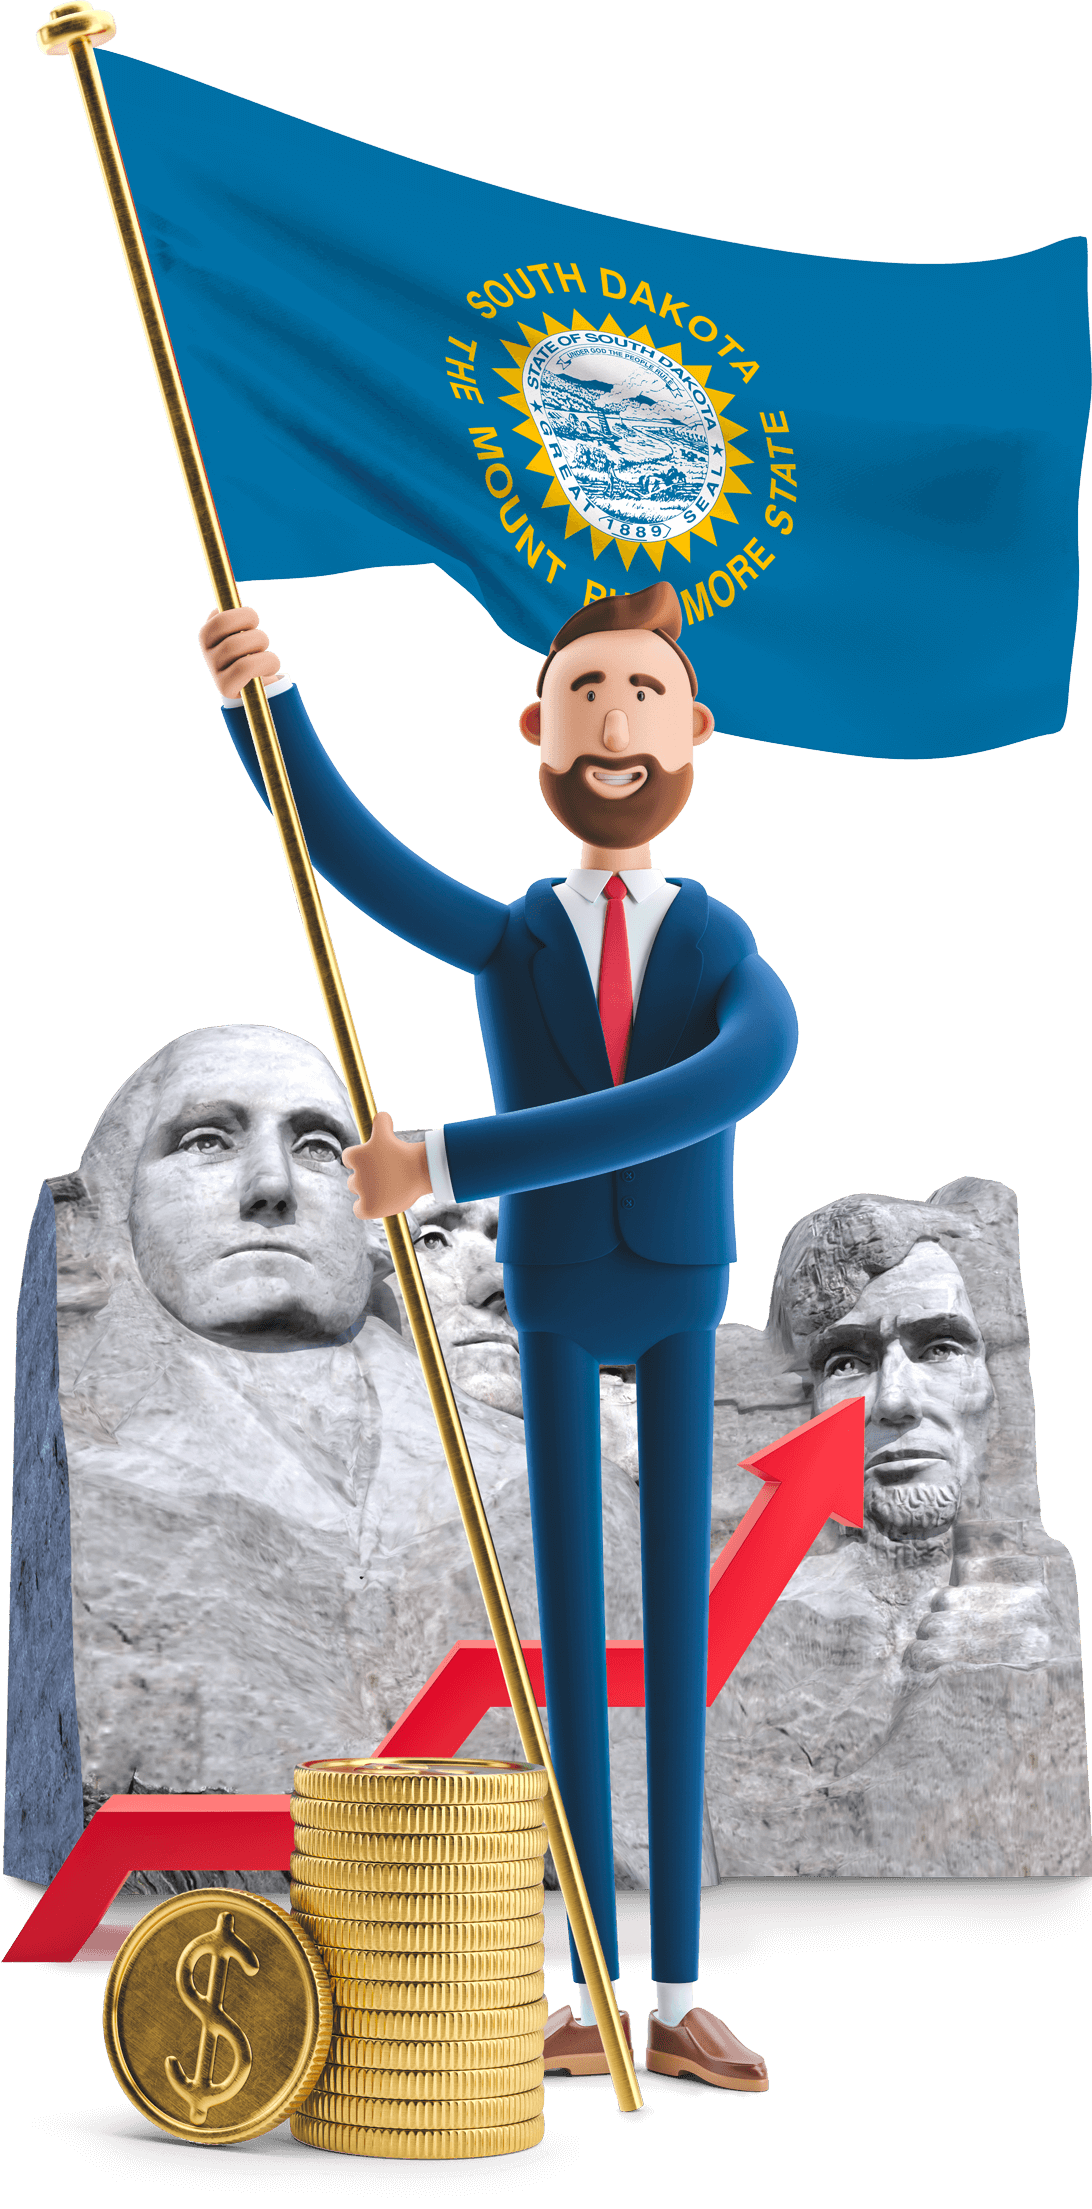 South Dakota flag held by MetCredit USA businessman who standing in front of Mount Rushmore